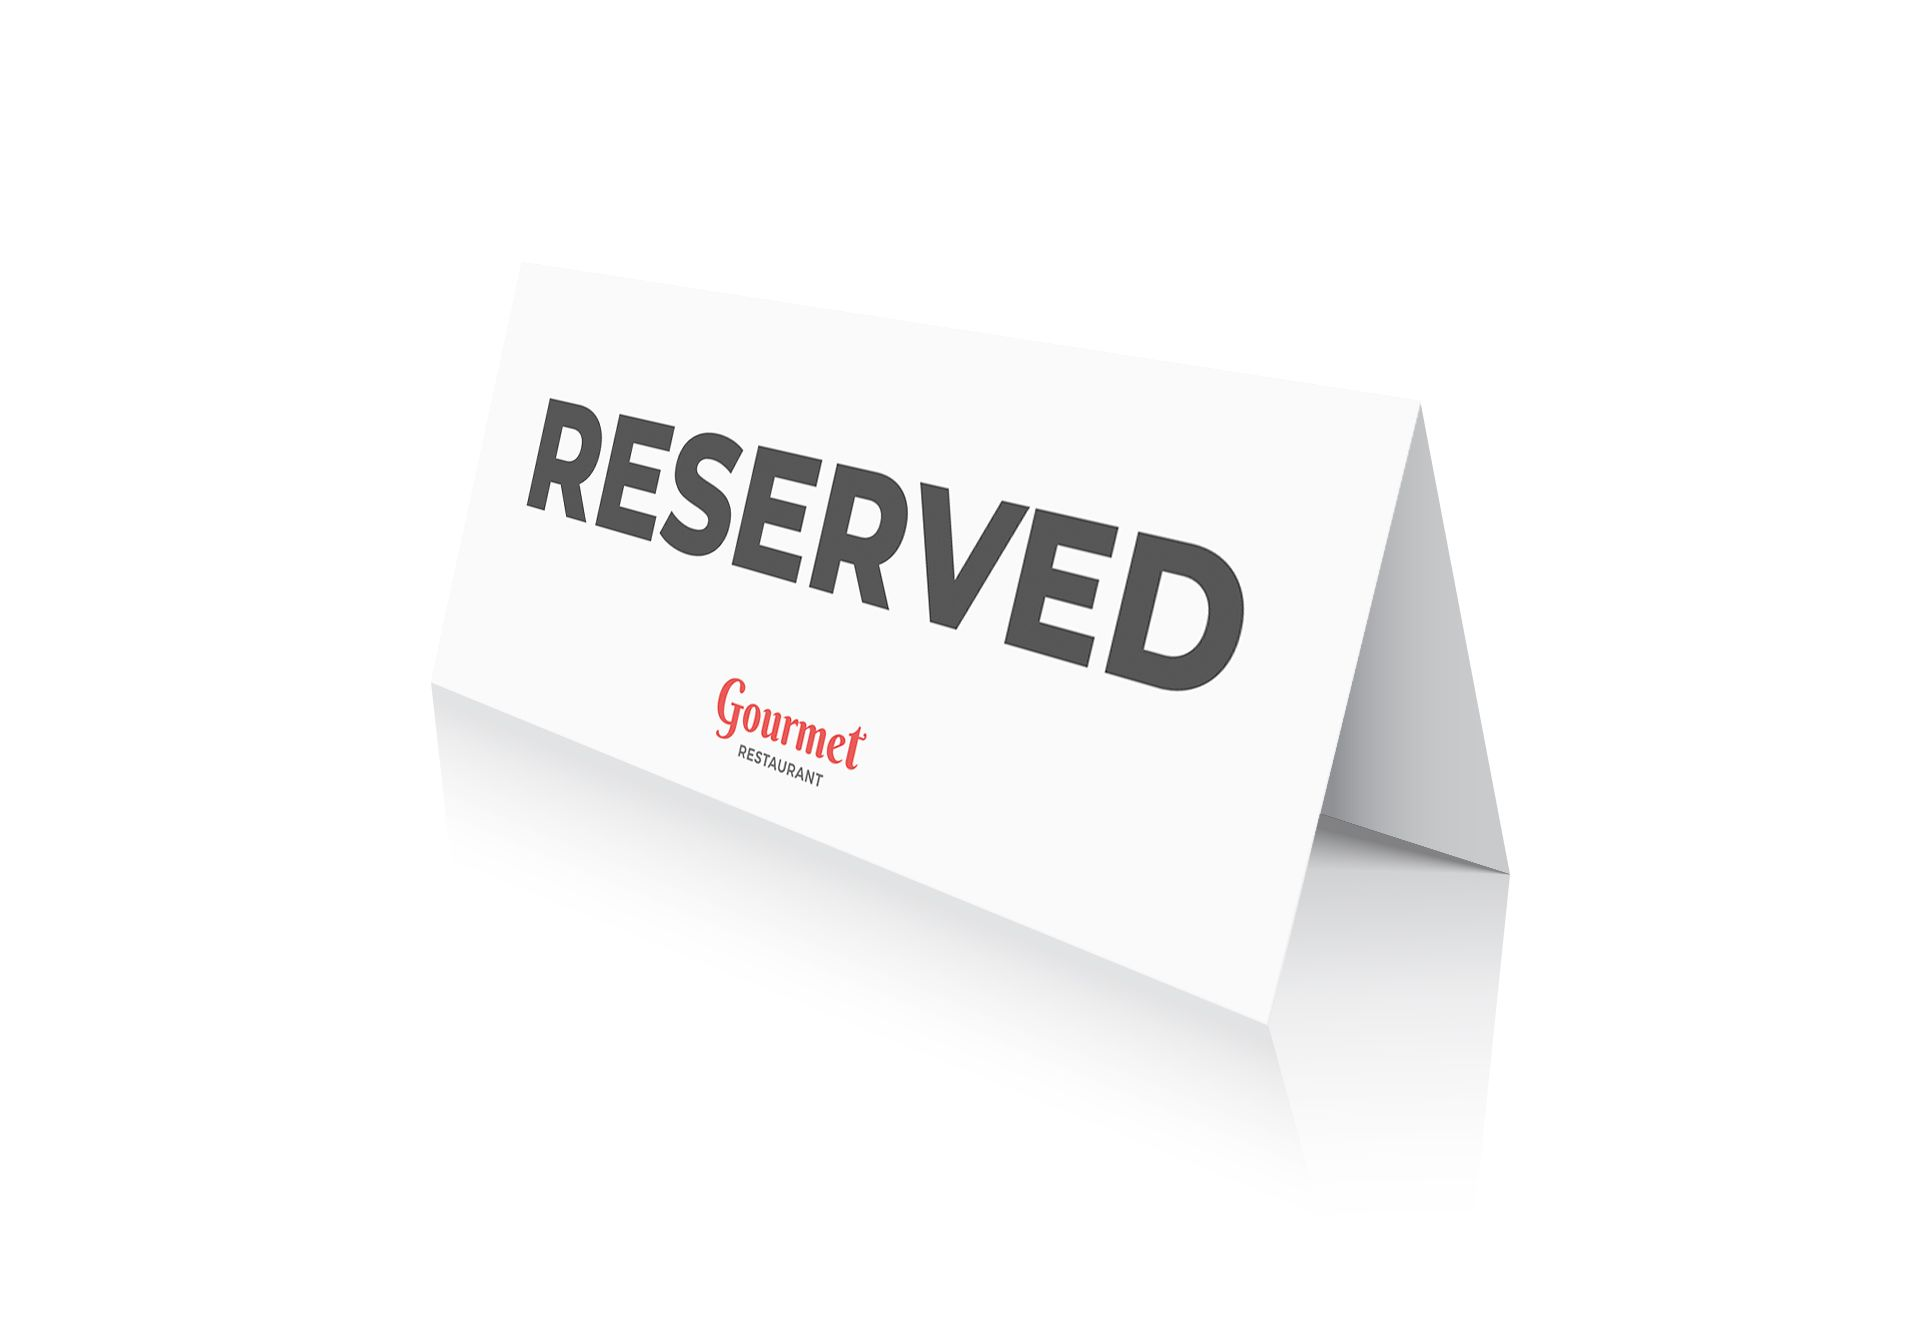 Restaurant Double-Sided Reserved Signs